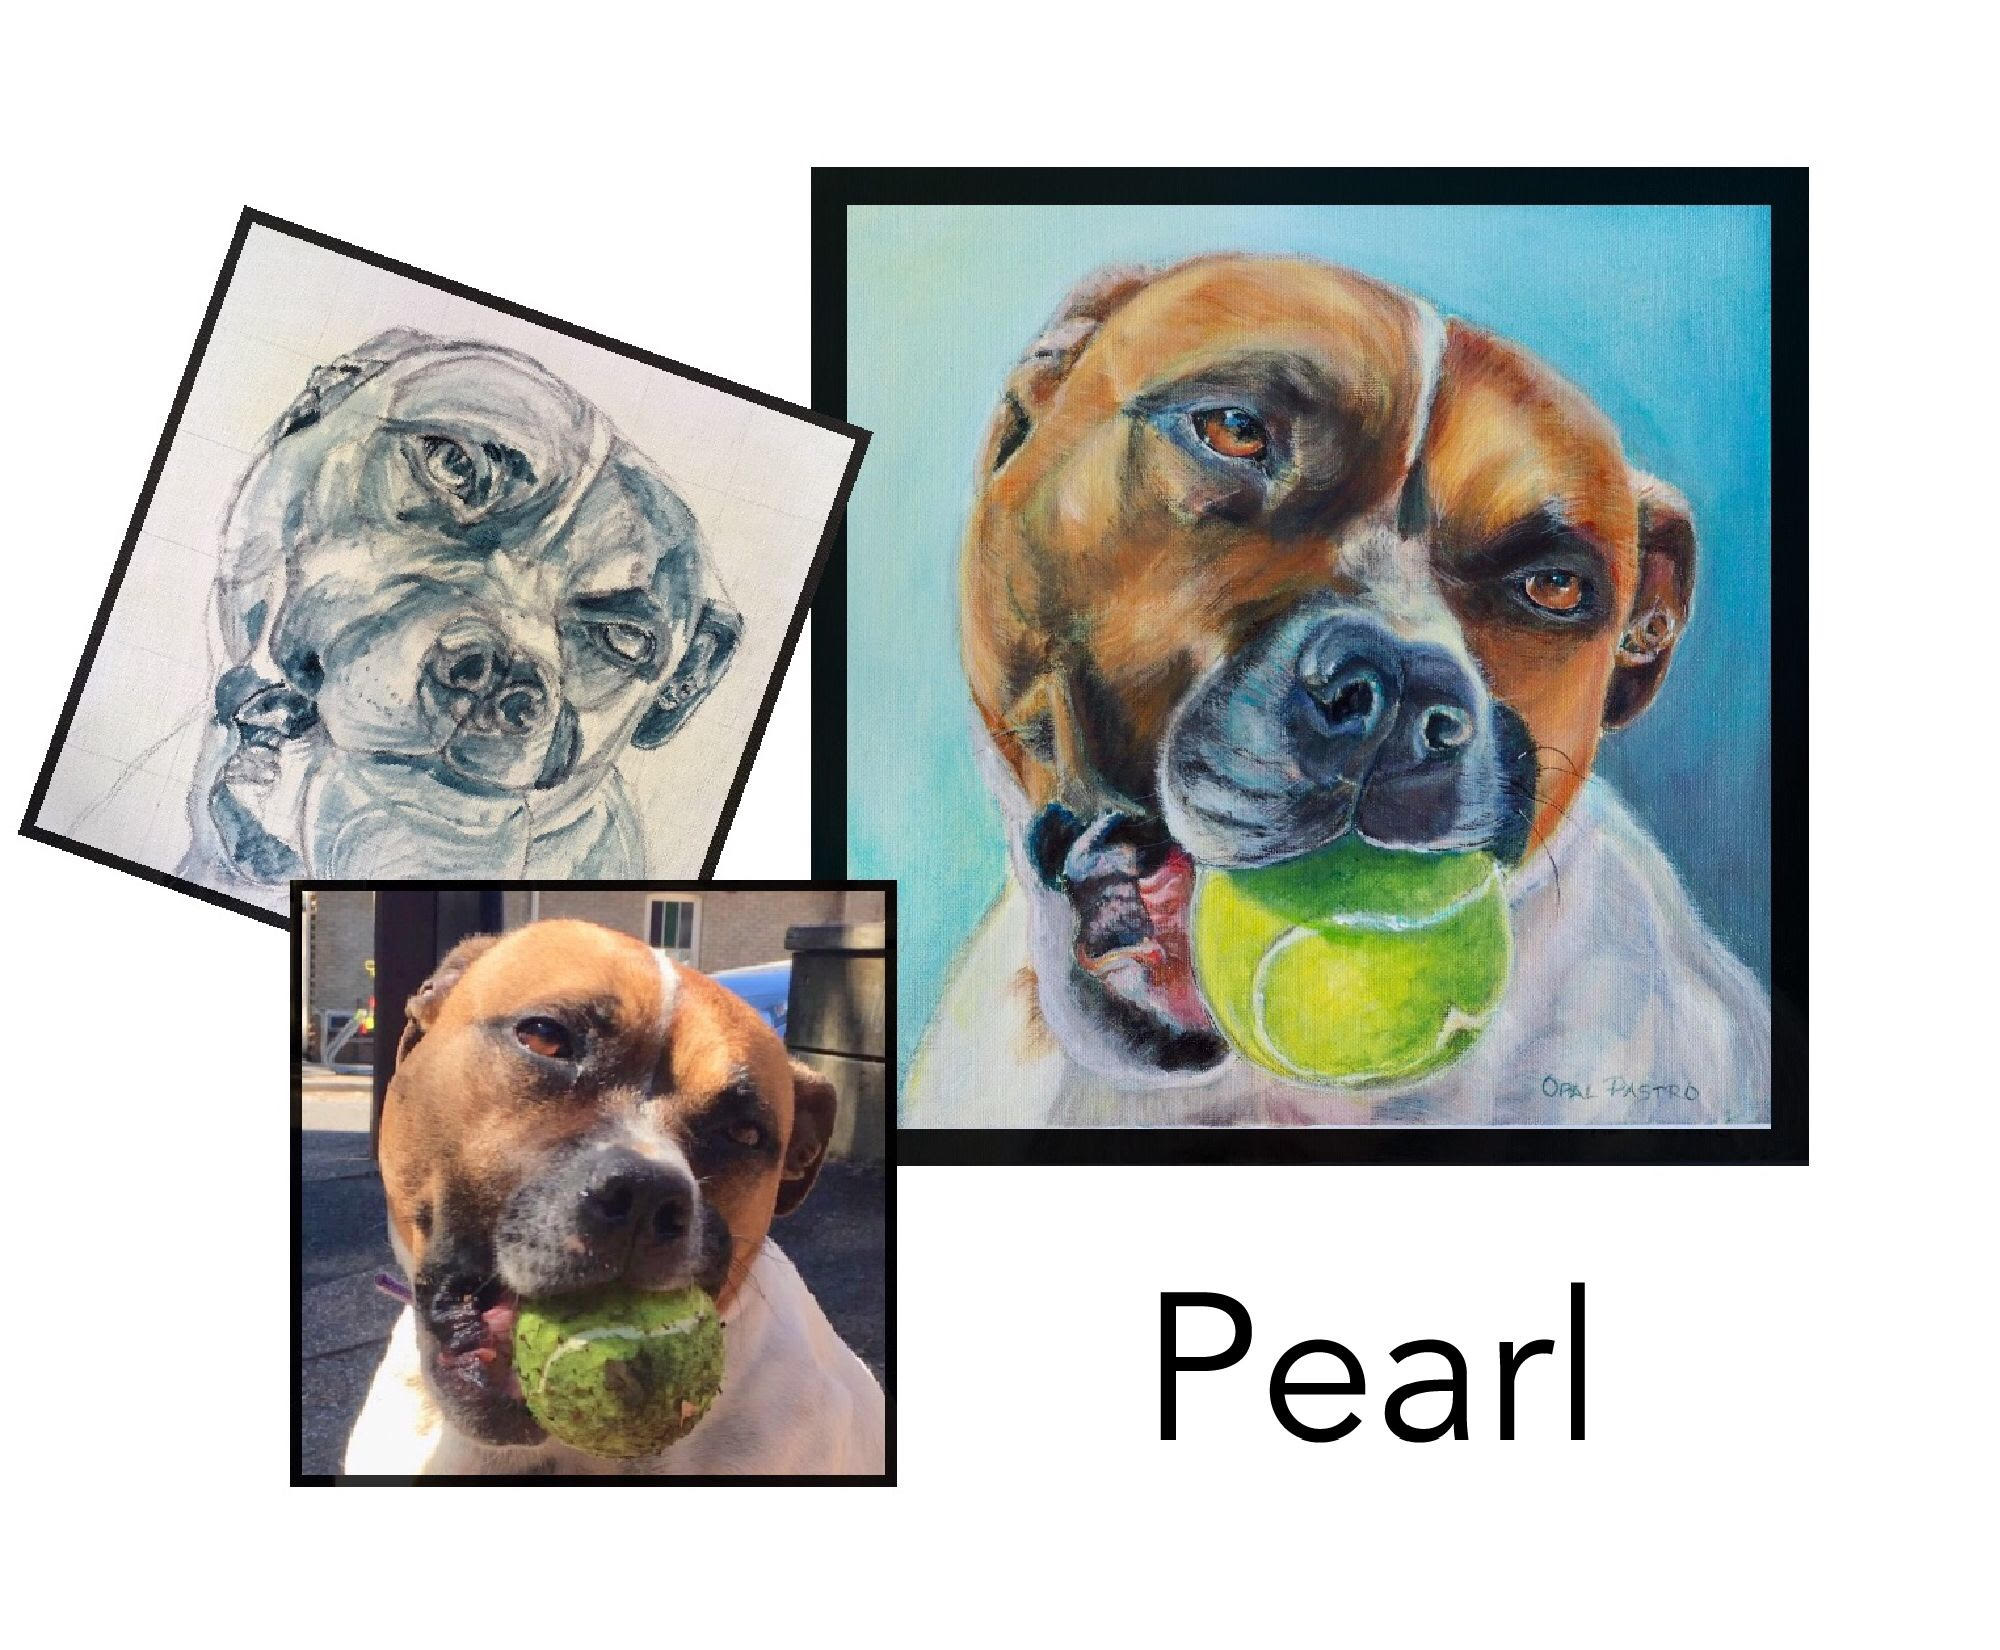 English Staffy - Acrylic on canvasPrivate commissionCoffs Harbour, NSW———————————Pearlie is a ball dog. you could say she is obsessed. When she sat for her photo shoot, we couldn't get it out of her mouth